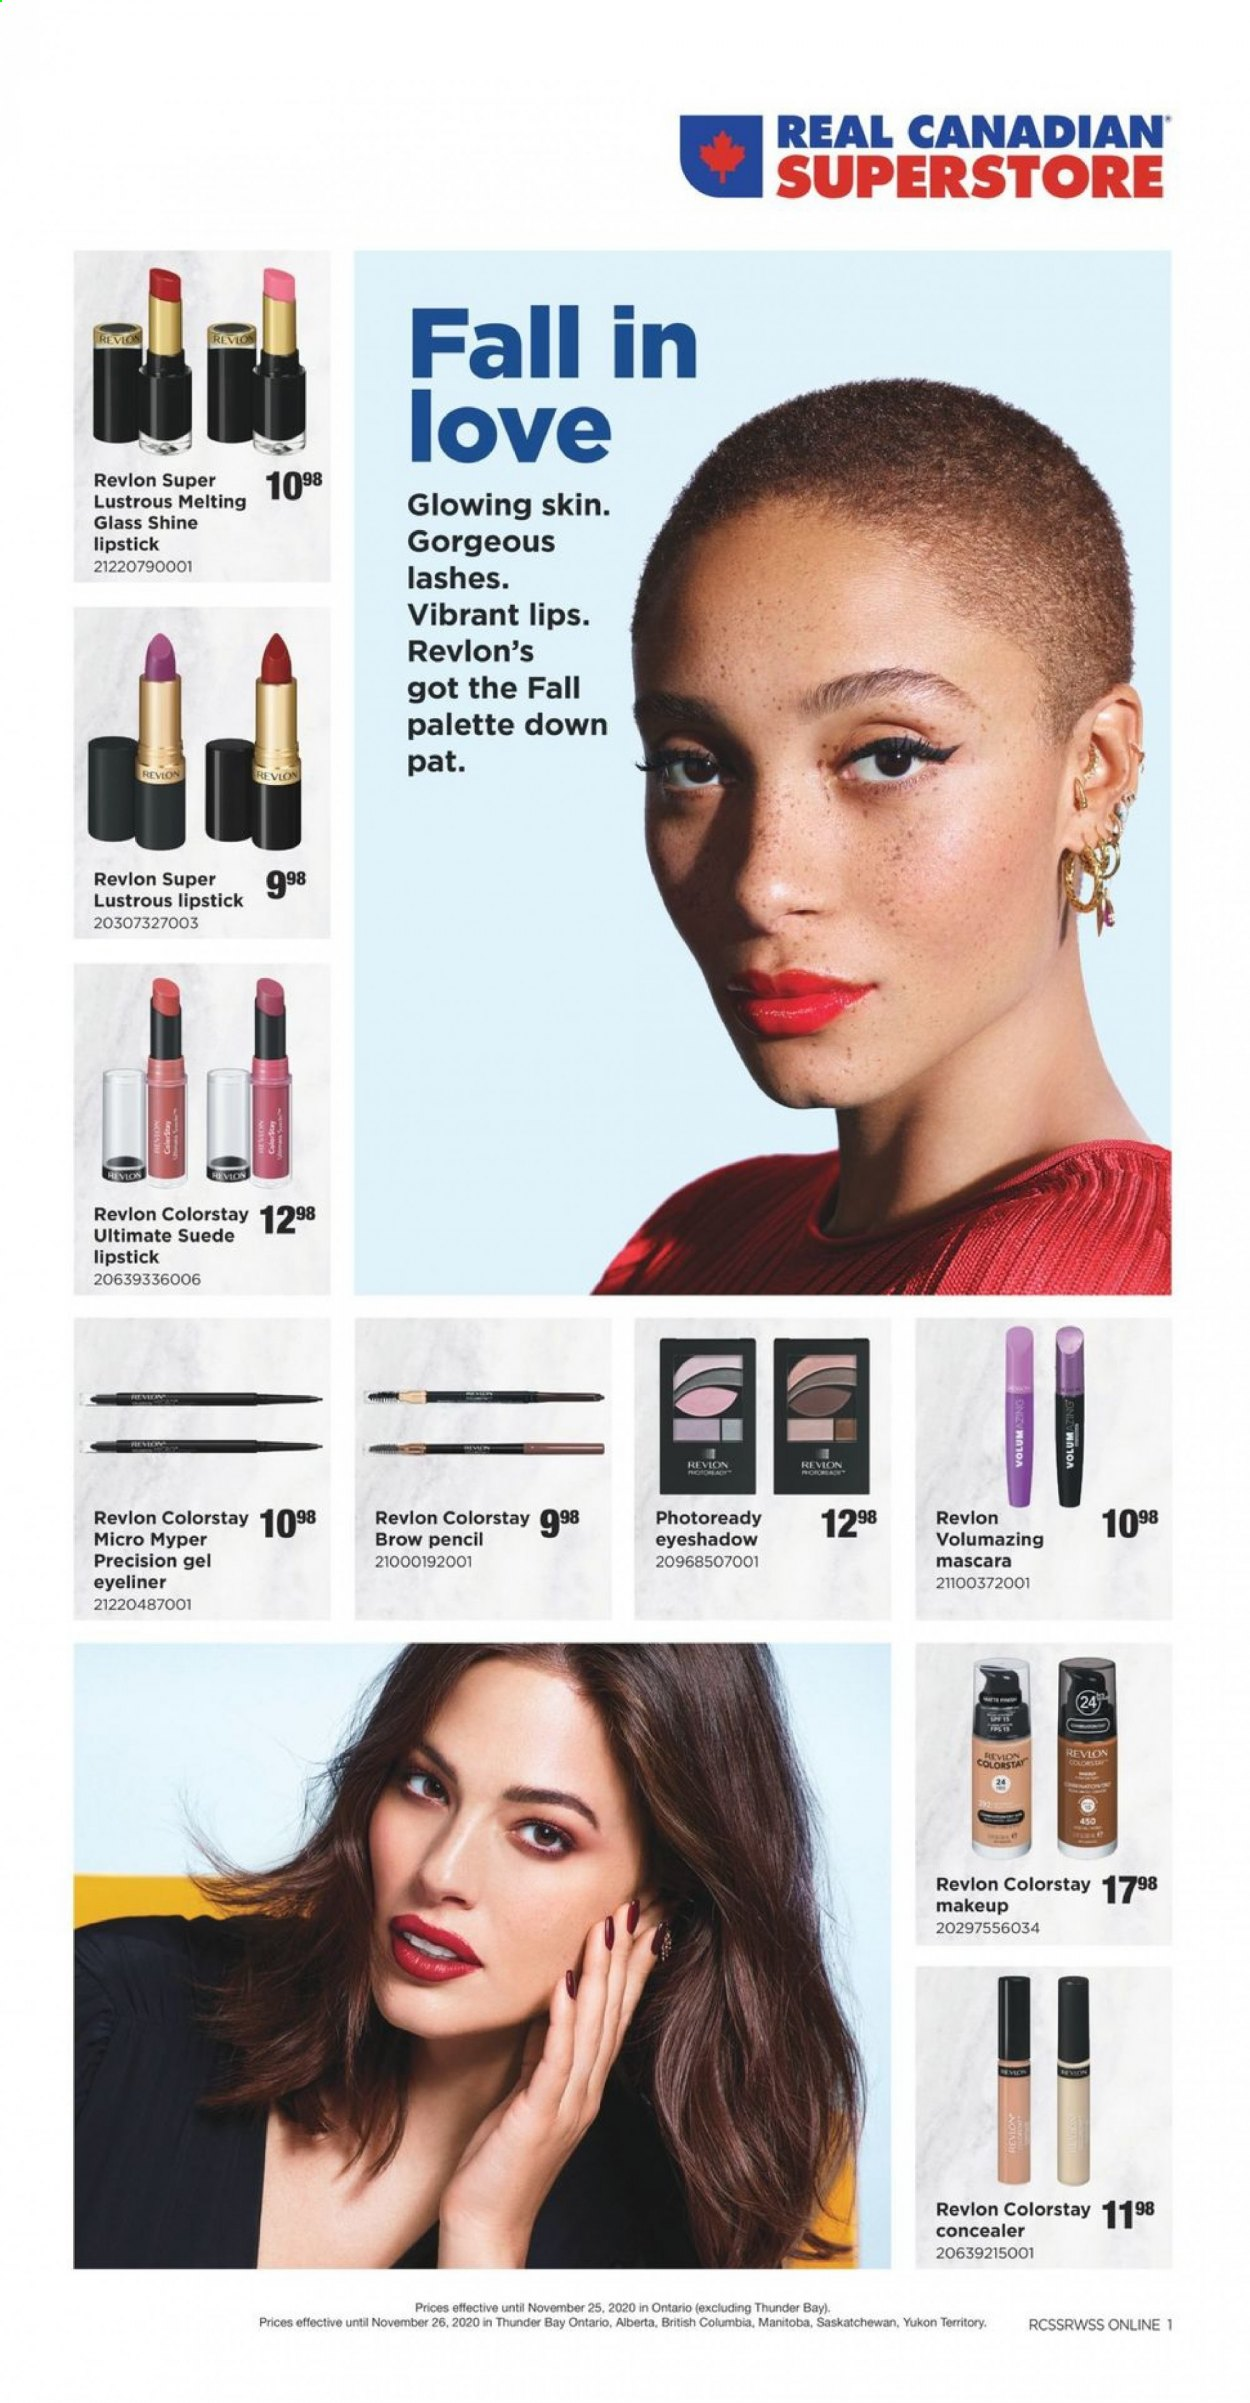 Real Canadian Superstore Flyer - November 05, 2020 - November 26, 2020 - Sales products - concealer, columbia, eyeshadow, lipstick, makeup, mascara, revlon, pet, palette, eyeliner, glass. Page 1.